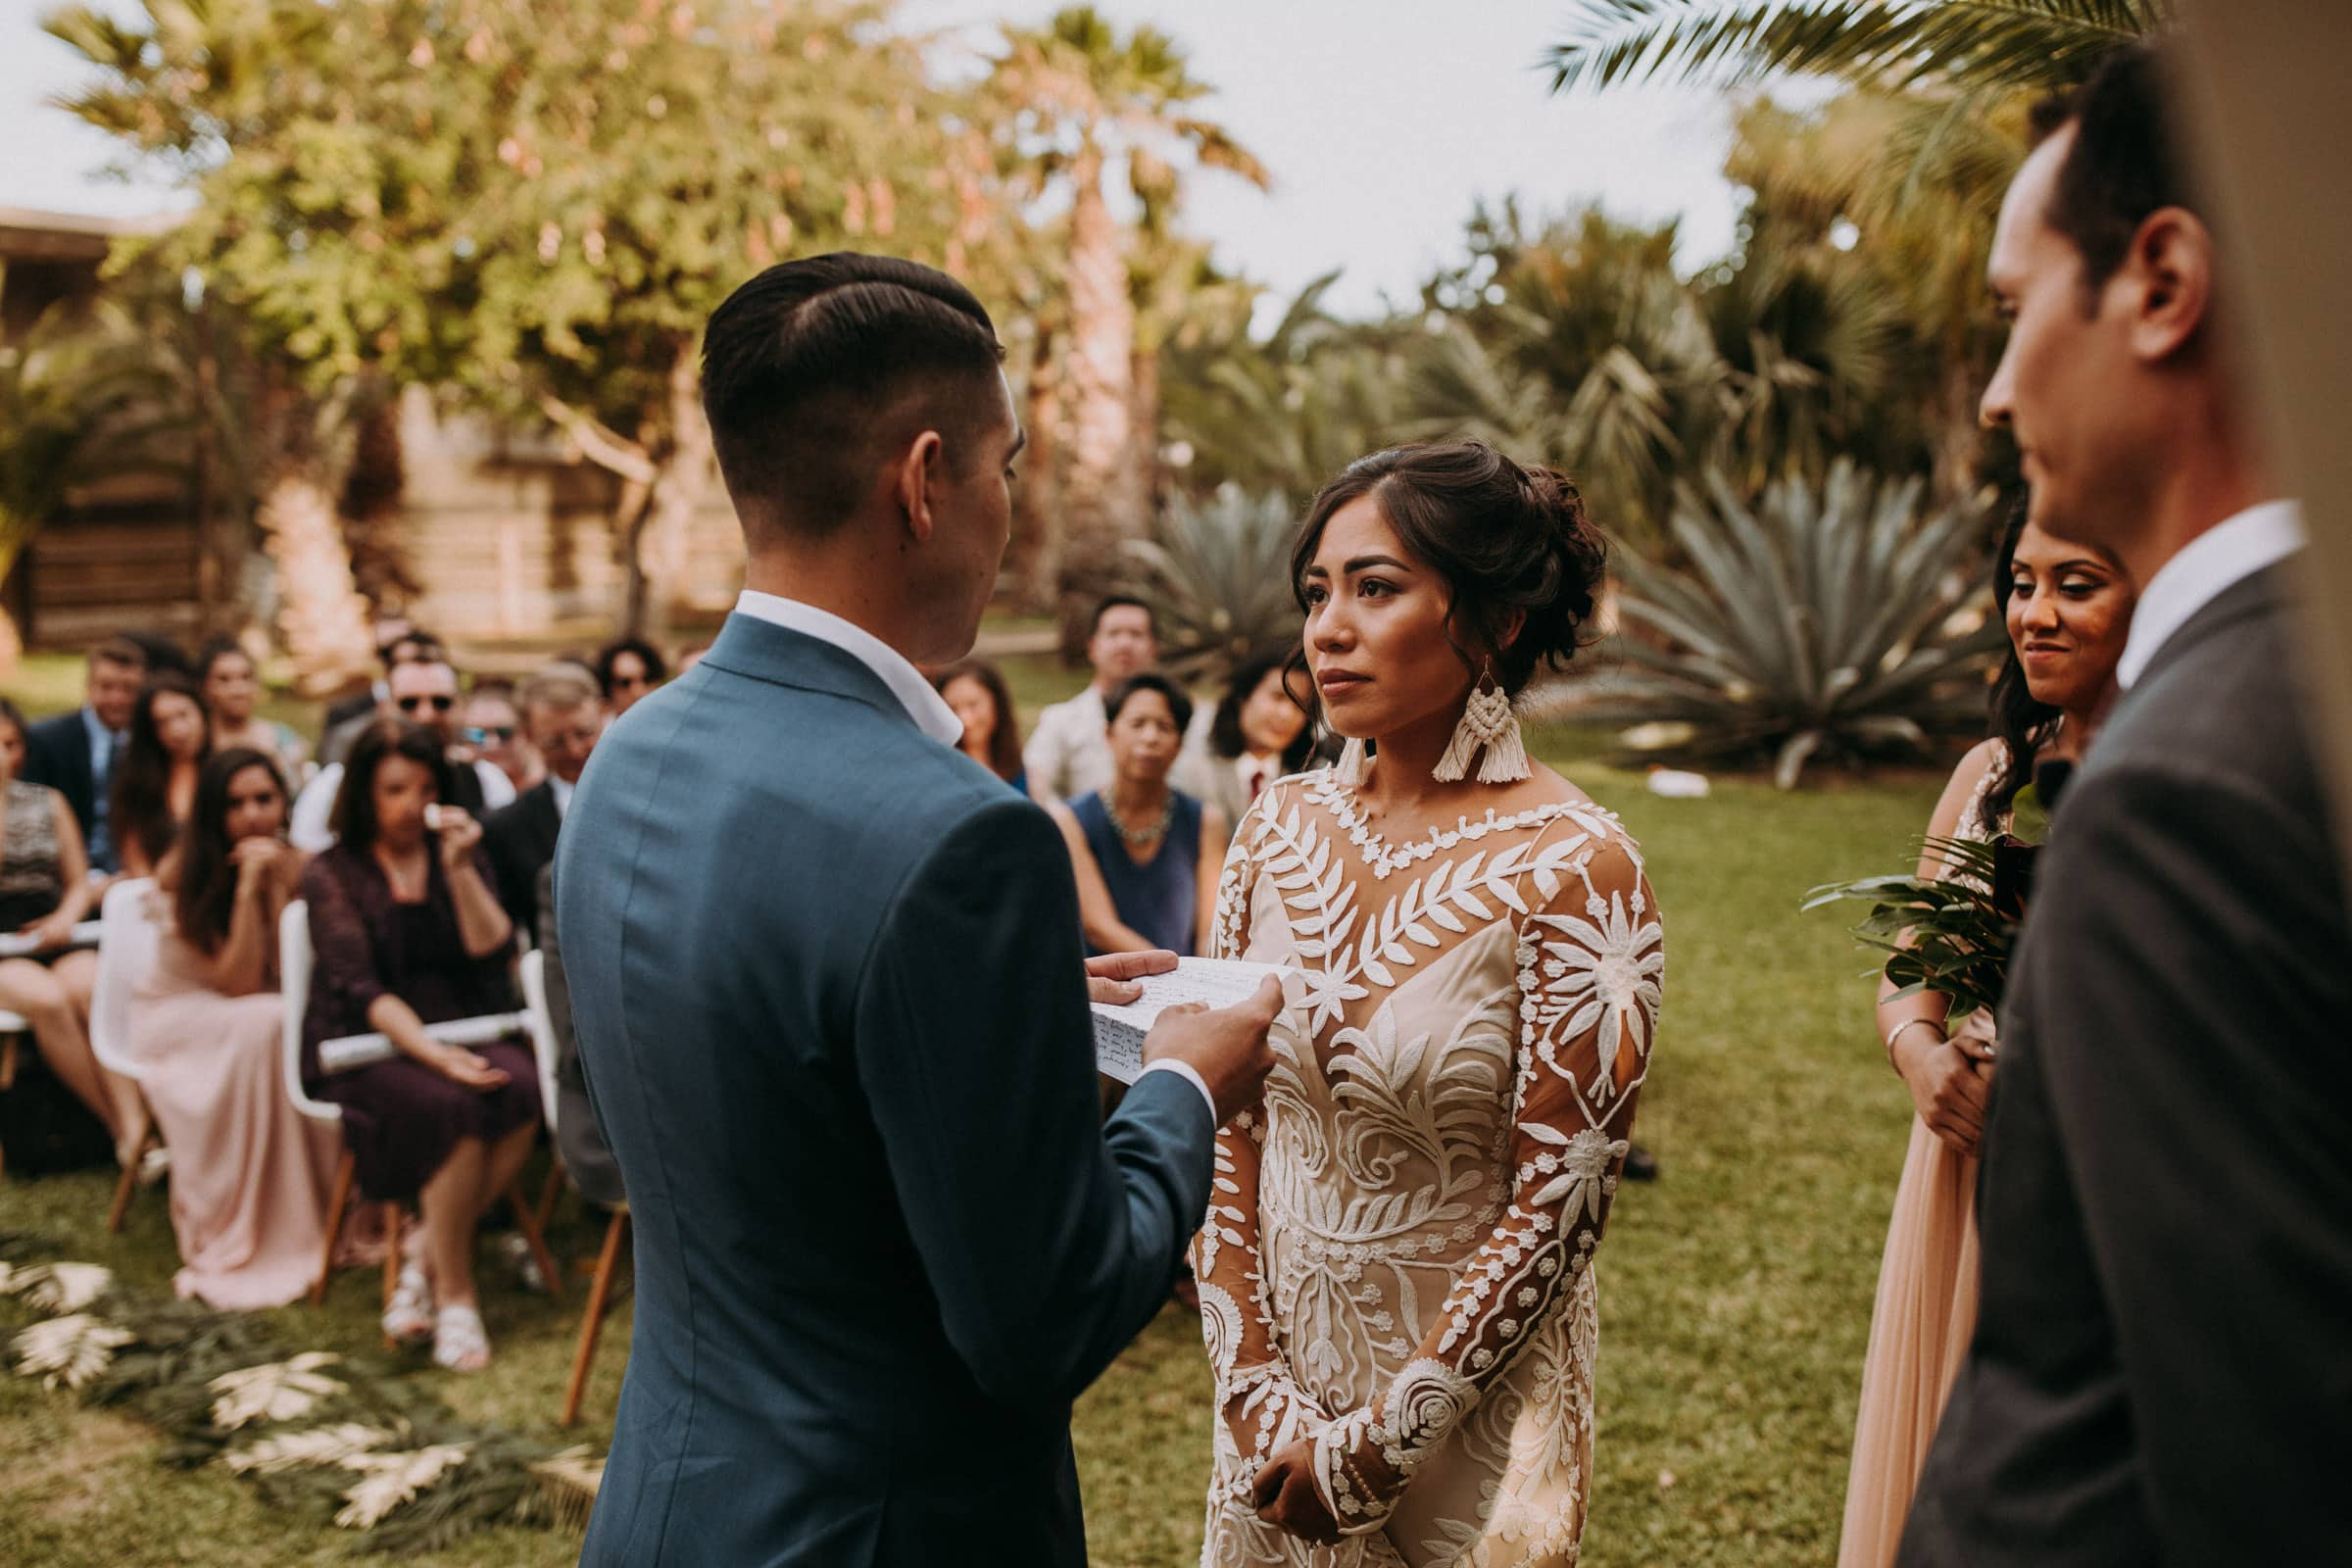 A wedding couple is exchanging vows at the San Jose Del Cabo Wedding.